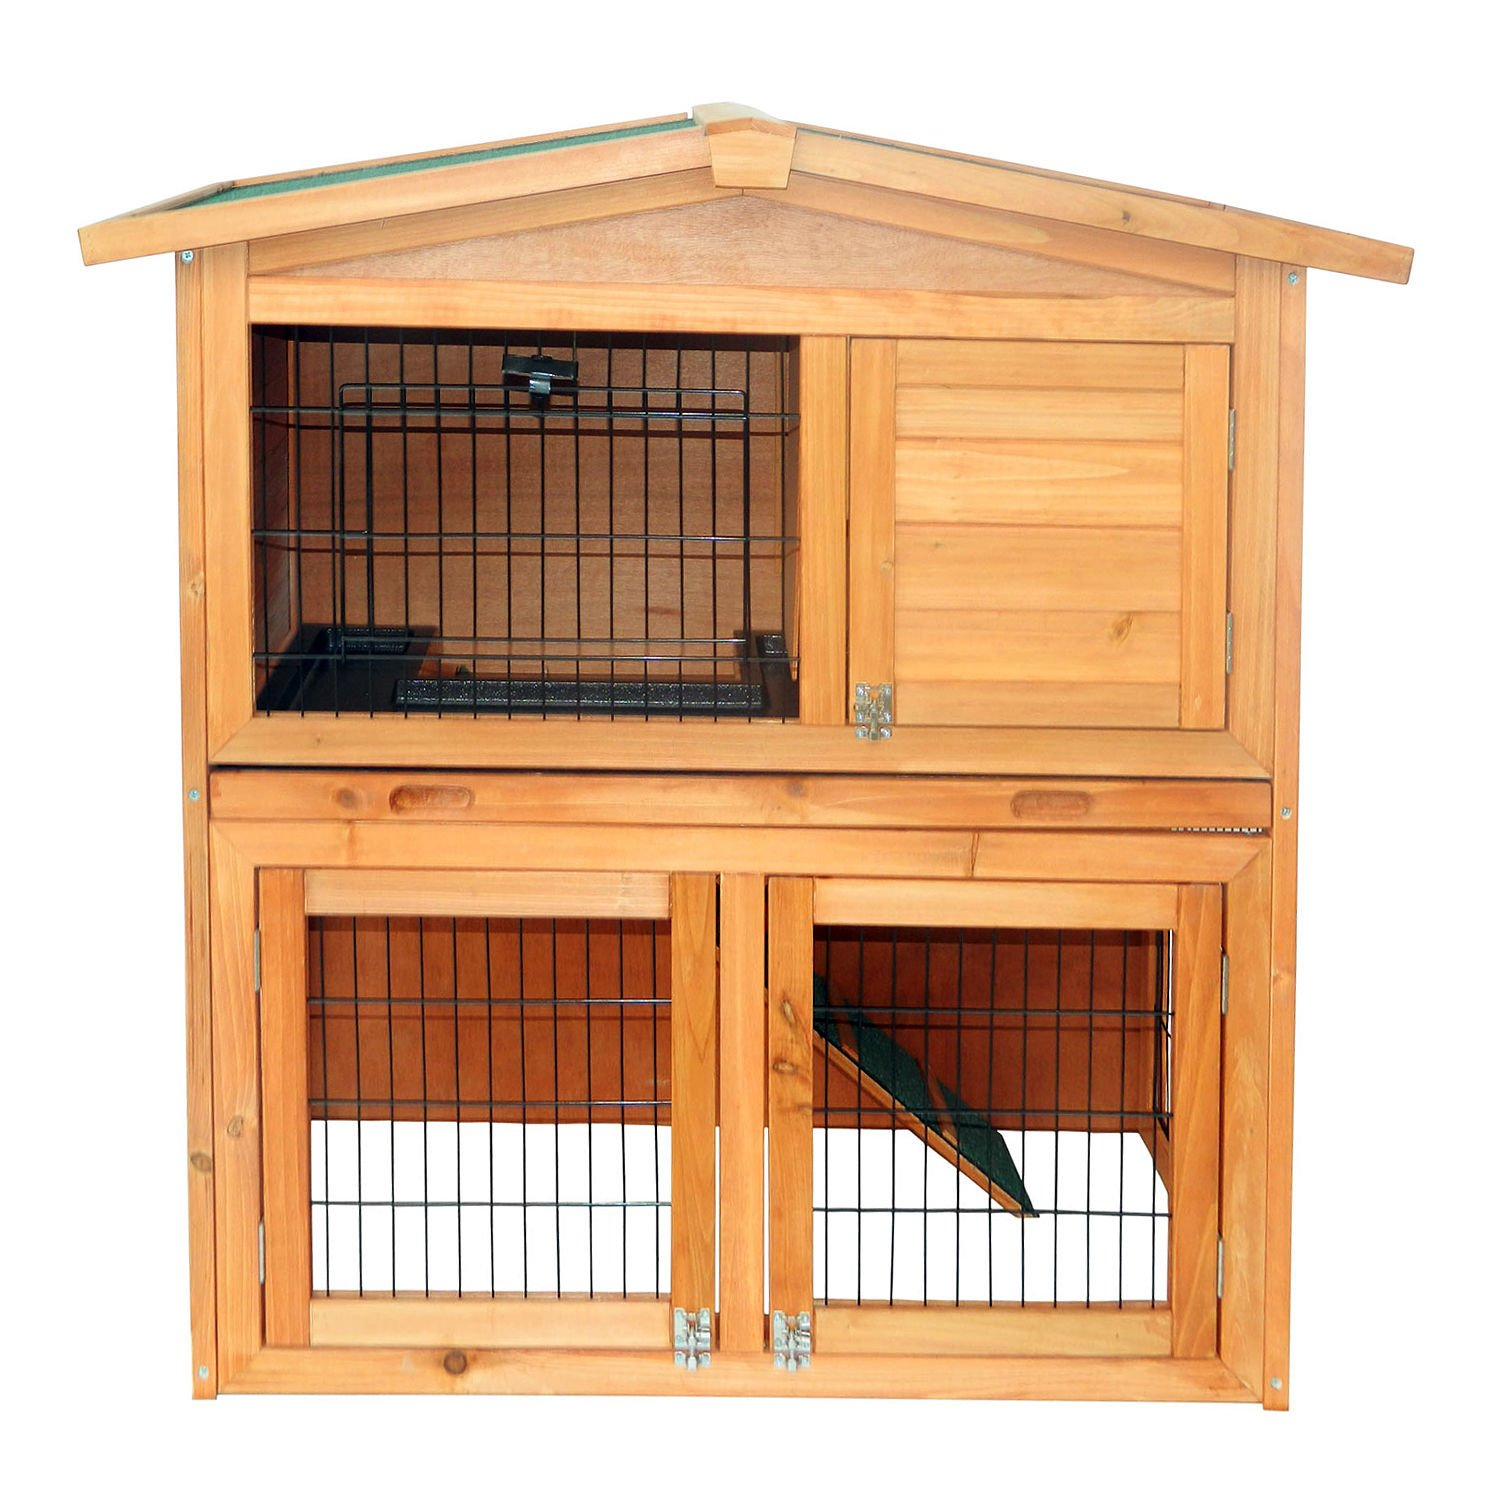 Wooden Rabbit Hutch Small Animal House Pet Cage Chicken Coop A-Frame 40''Pet Holds Cages Home - House Deals by House Deals